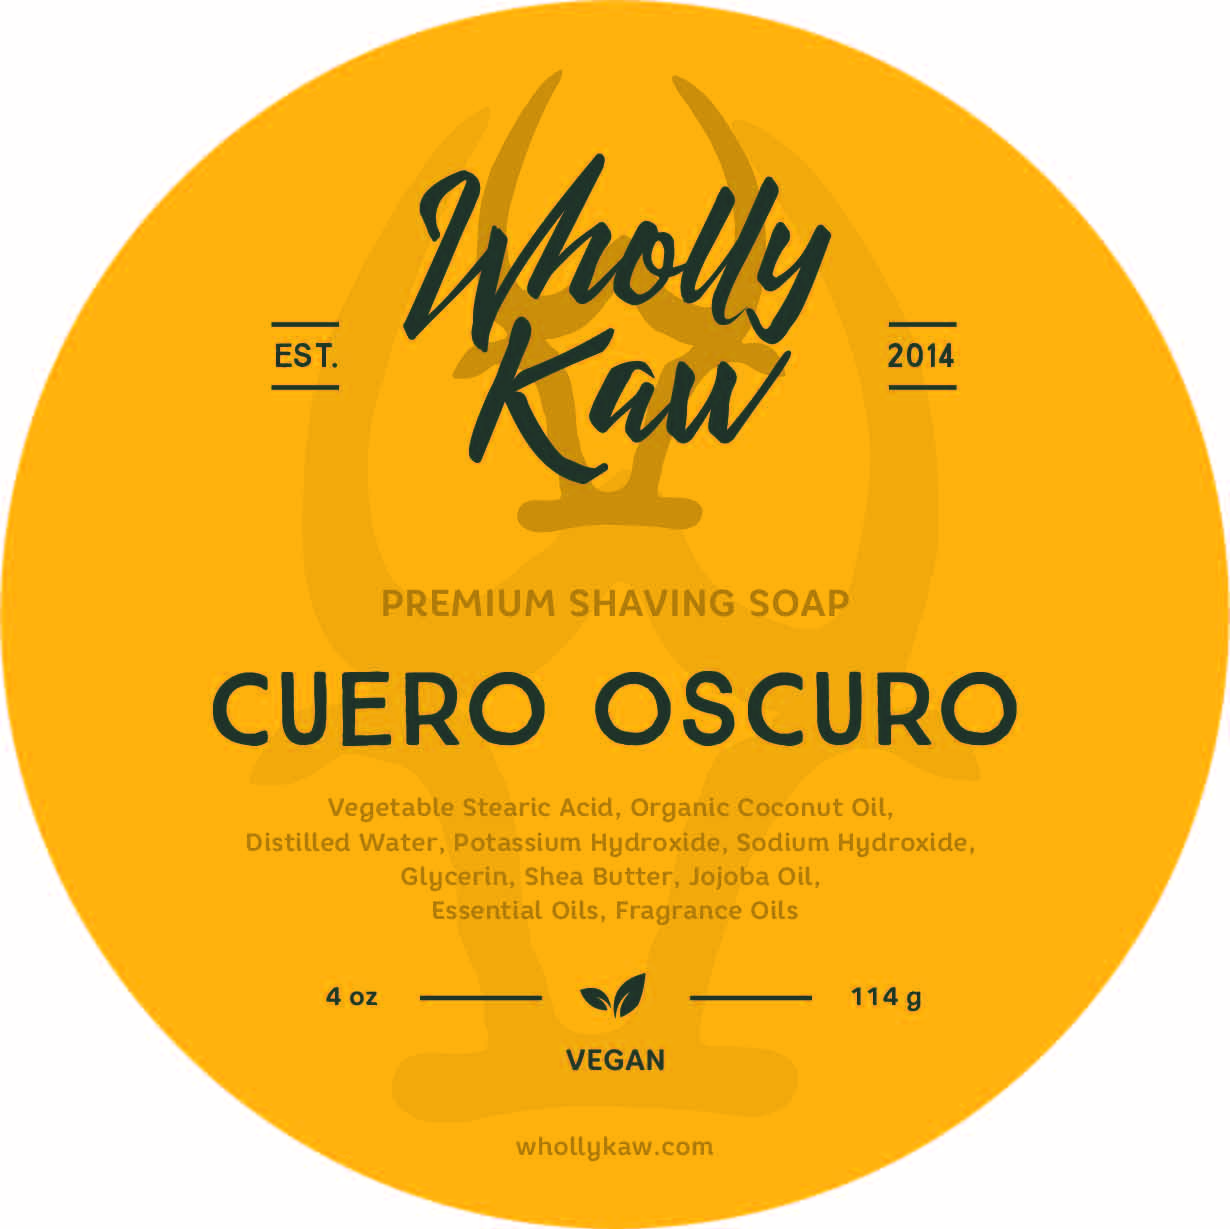 Wholly Kaw - Cuero Oscuro - Soap (Vegan) image